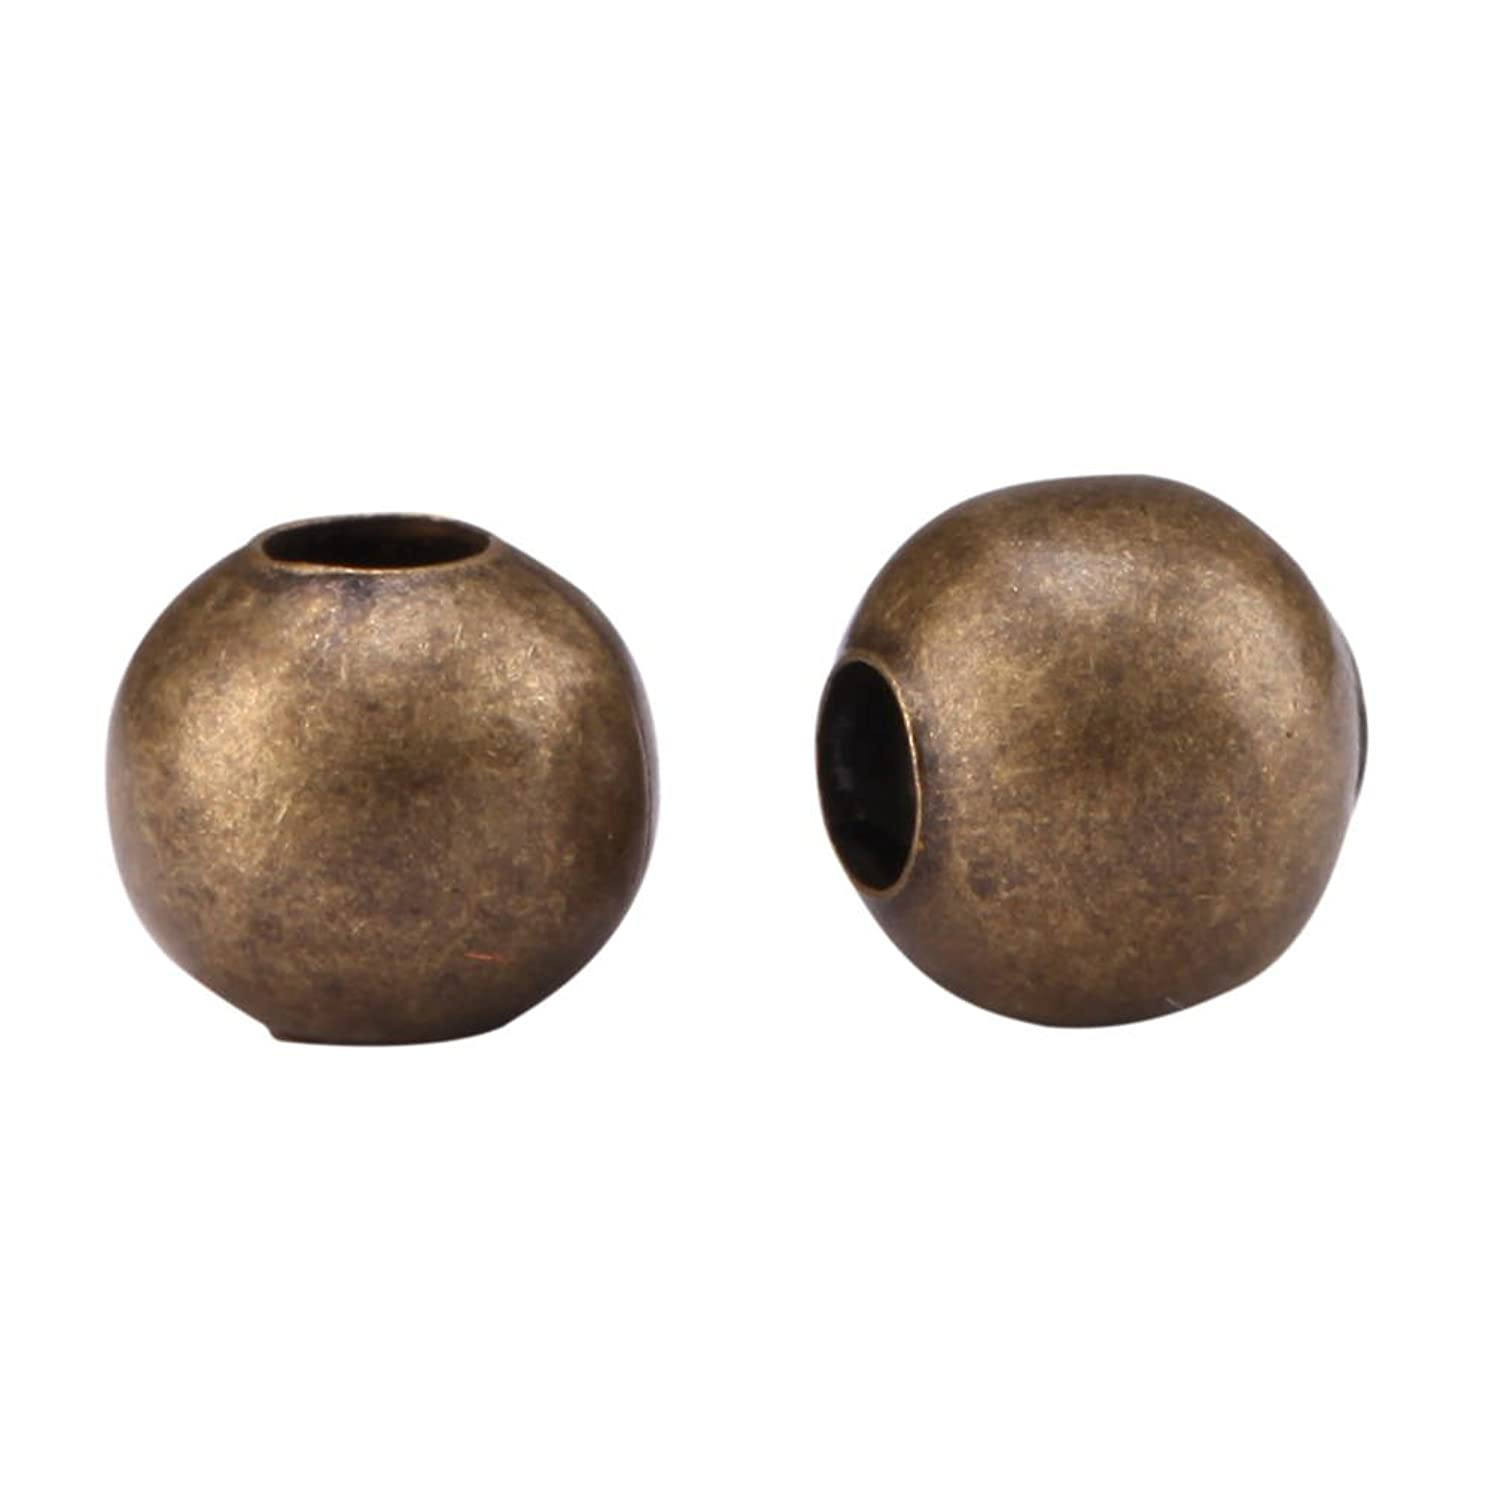 500pcs Top Quality 3mm Small Smooth Antique Bronze Loose Round Spacer Beads (Hole ~1.5mm) for Jewelry Craft Making CF89-3